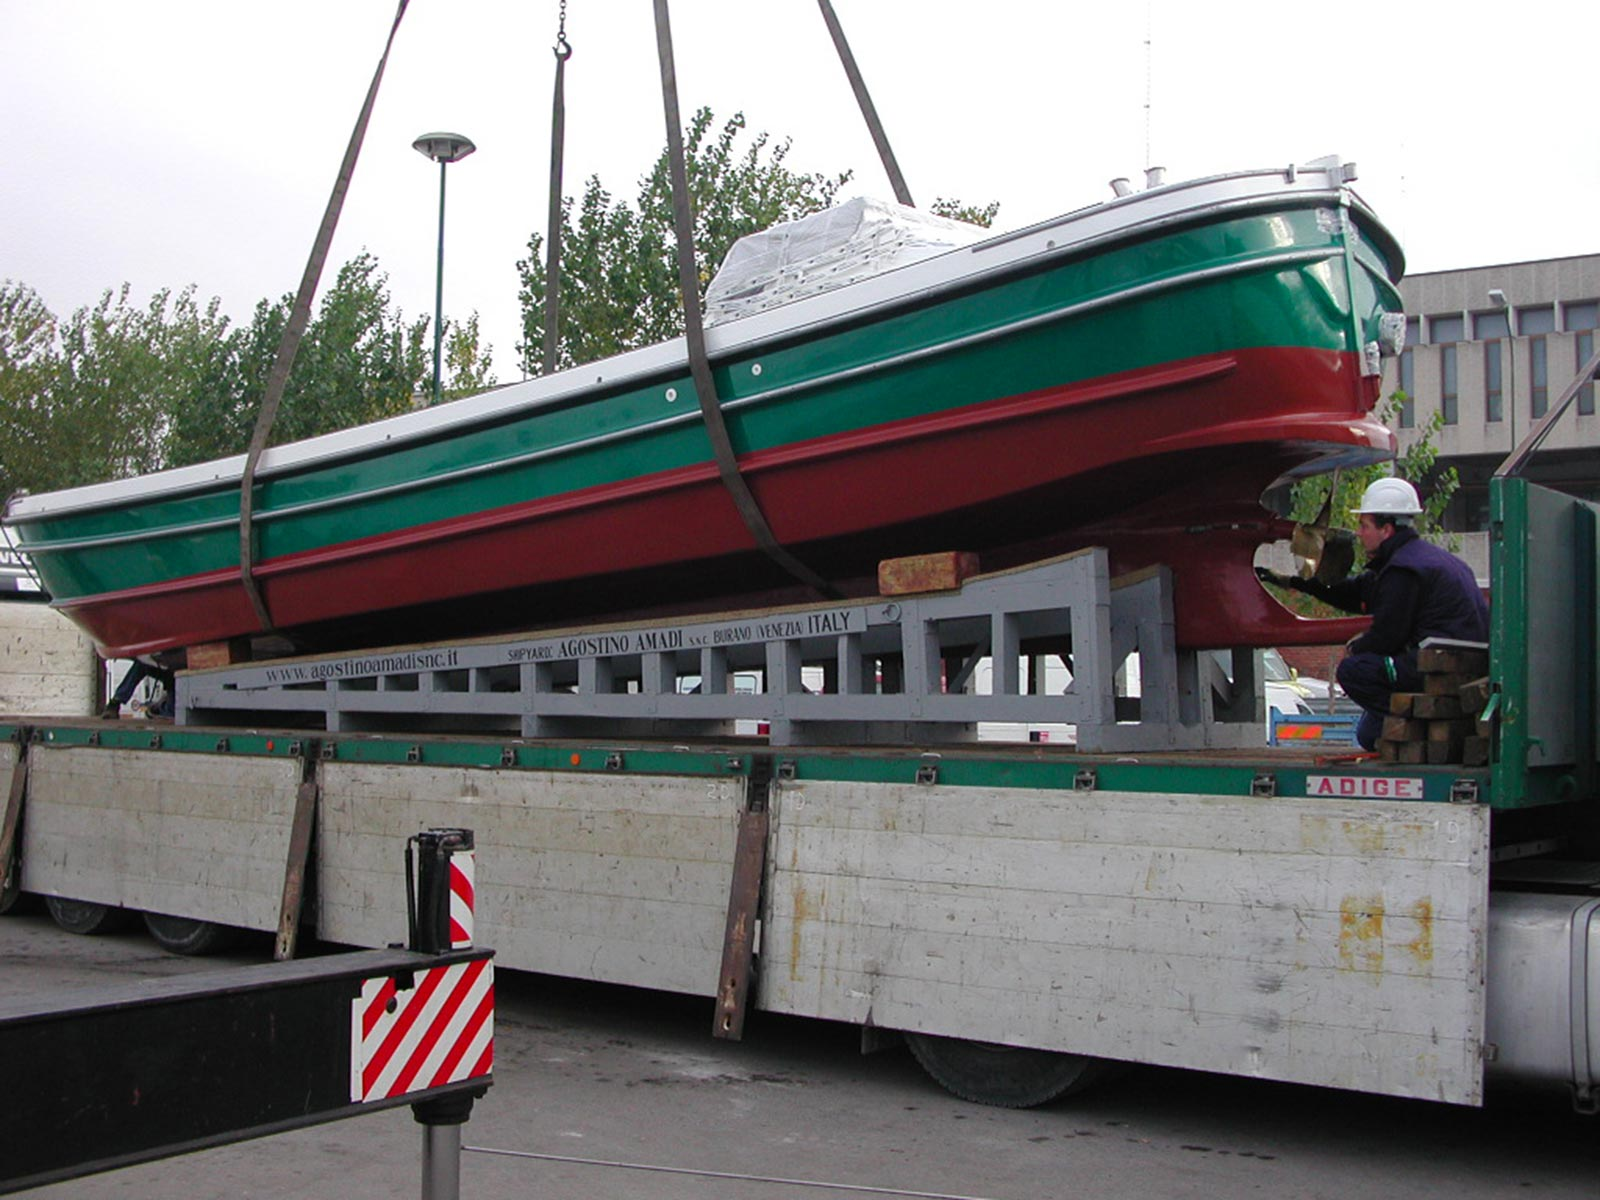 Unloading a craft in the Venice Tronchetto area